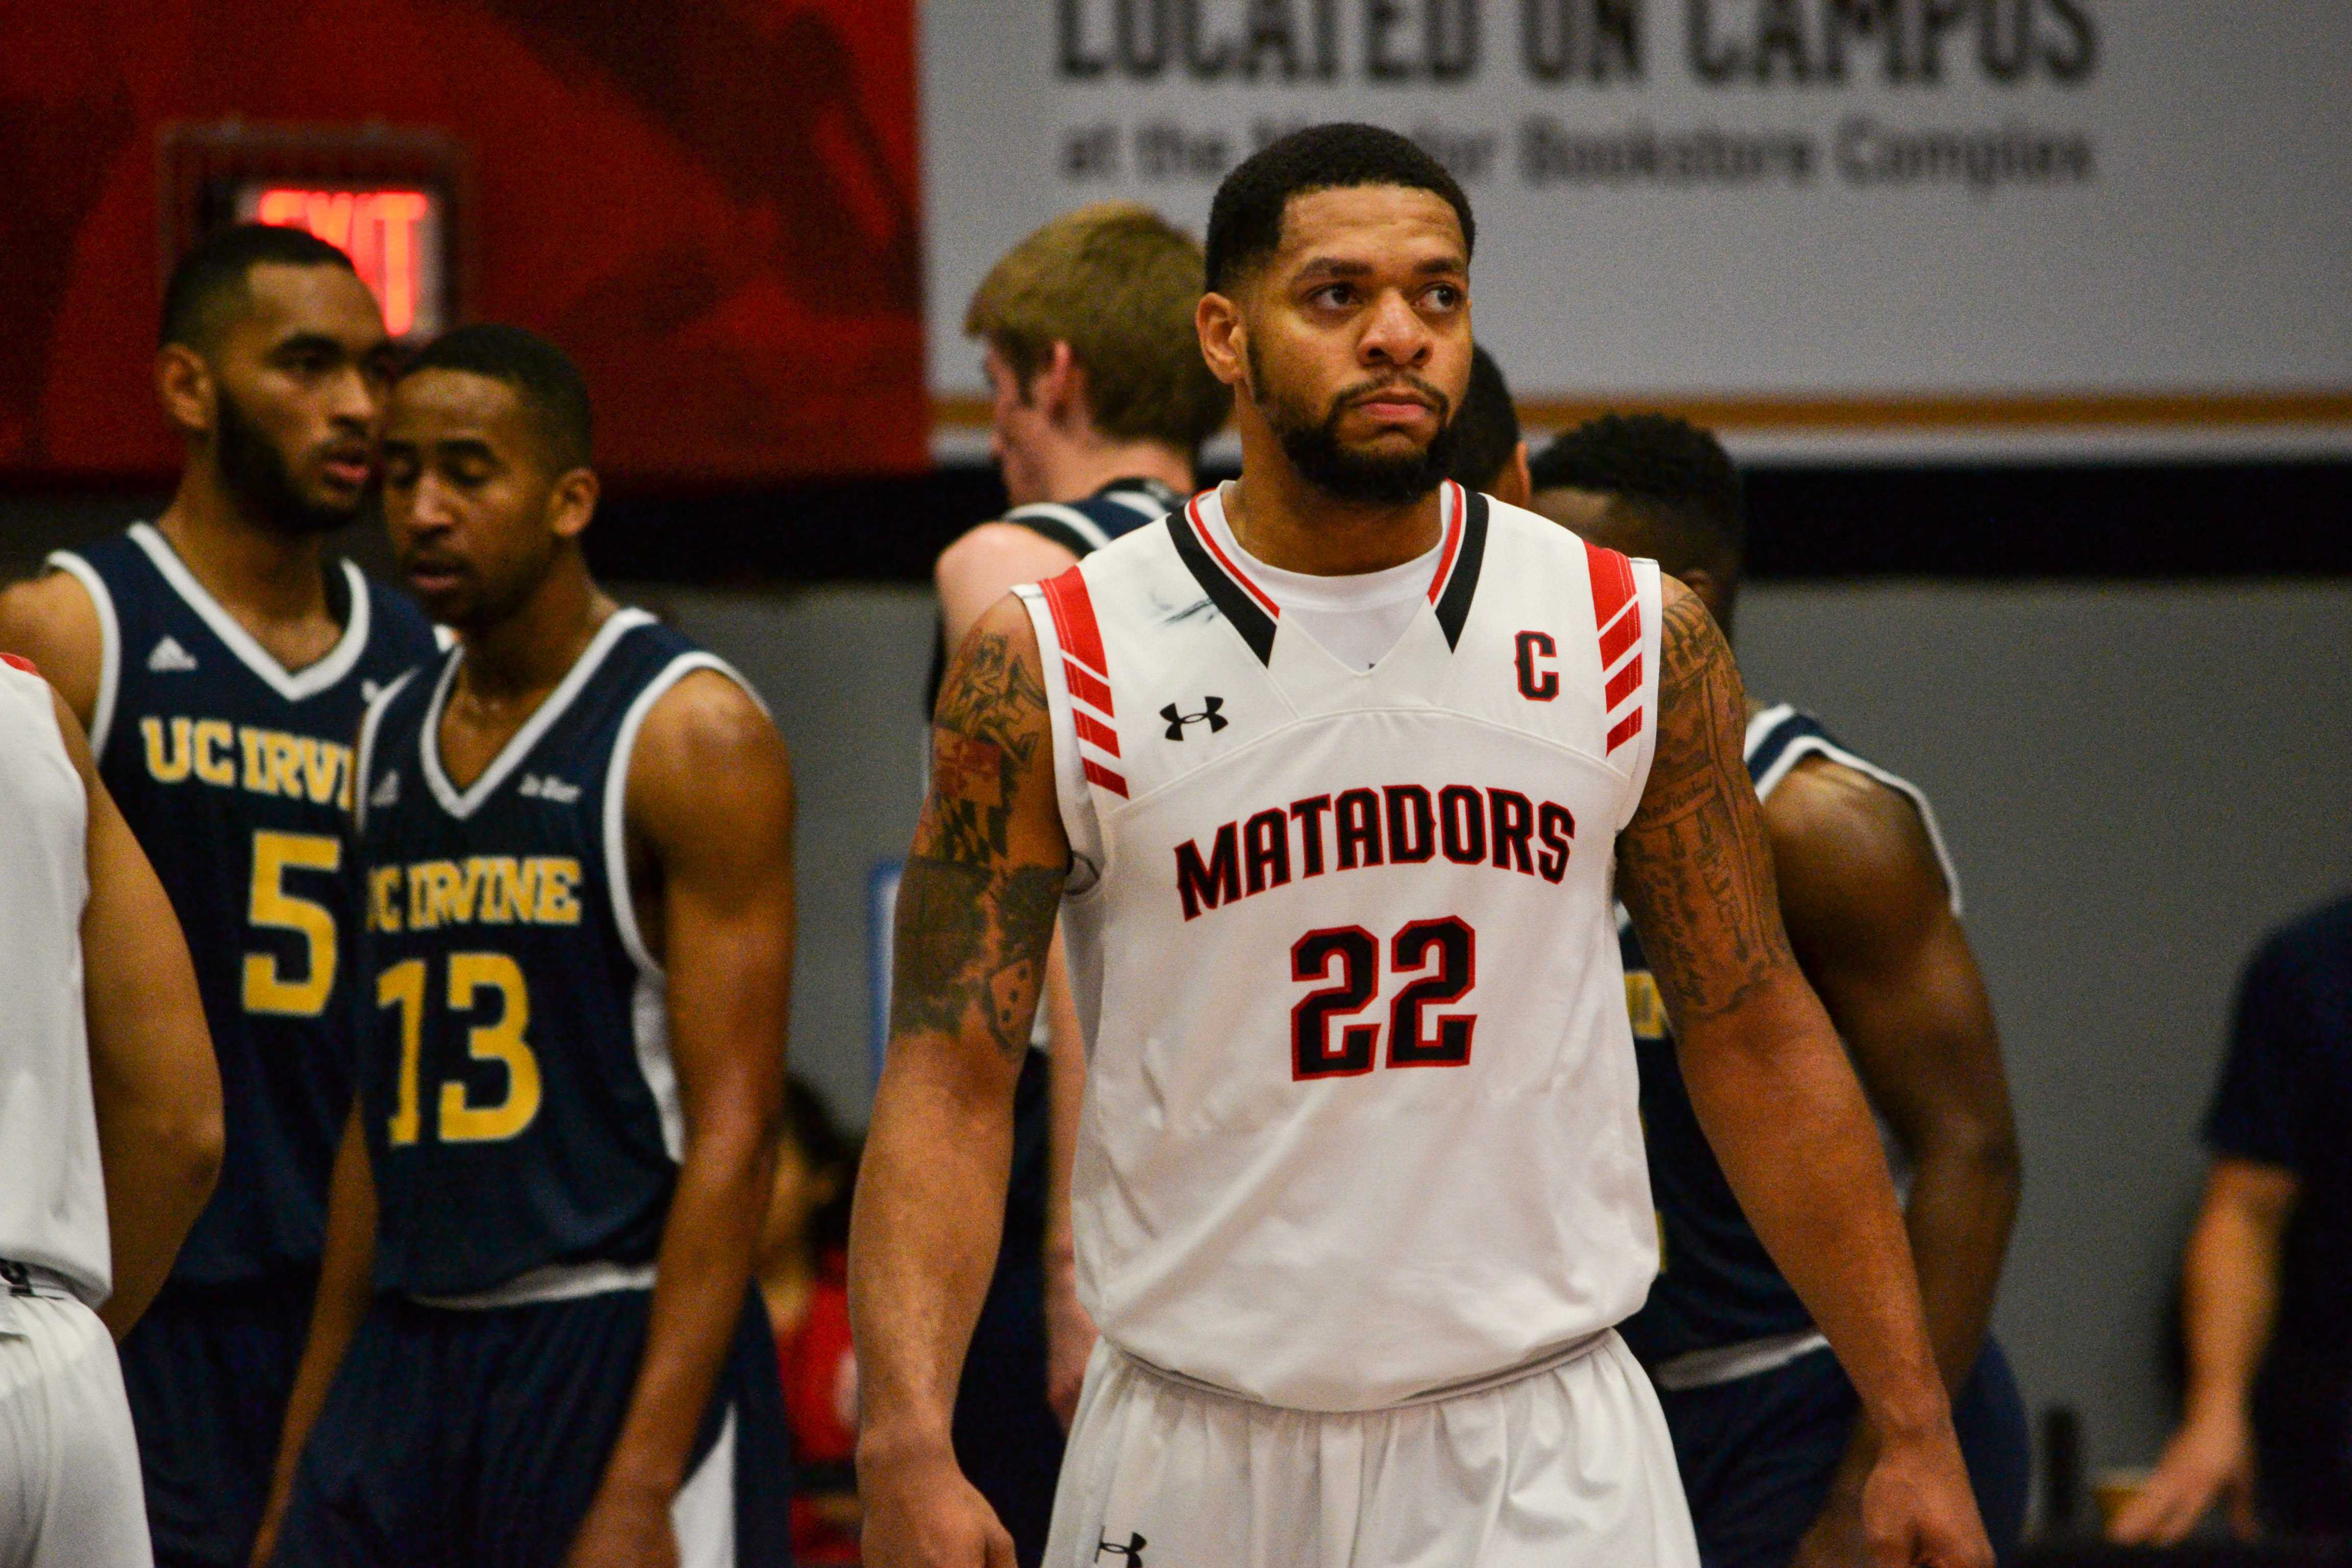 CSUN's Senior guard Aaron Parks, anxiously checking the score board at the game on Saturday, January 21st. Photo credit: Breaunne Pinckney